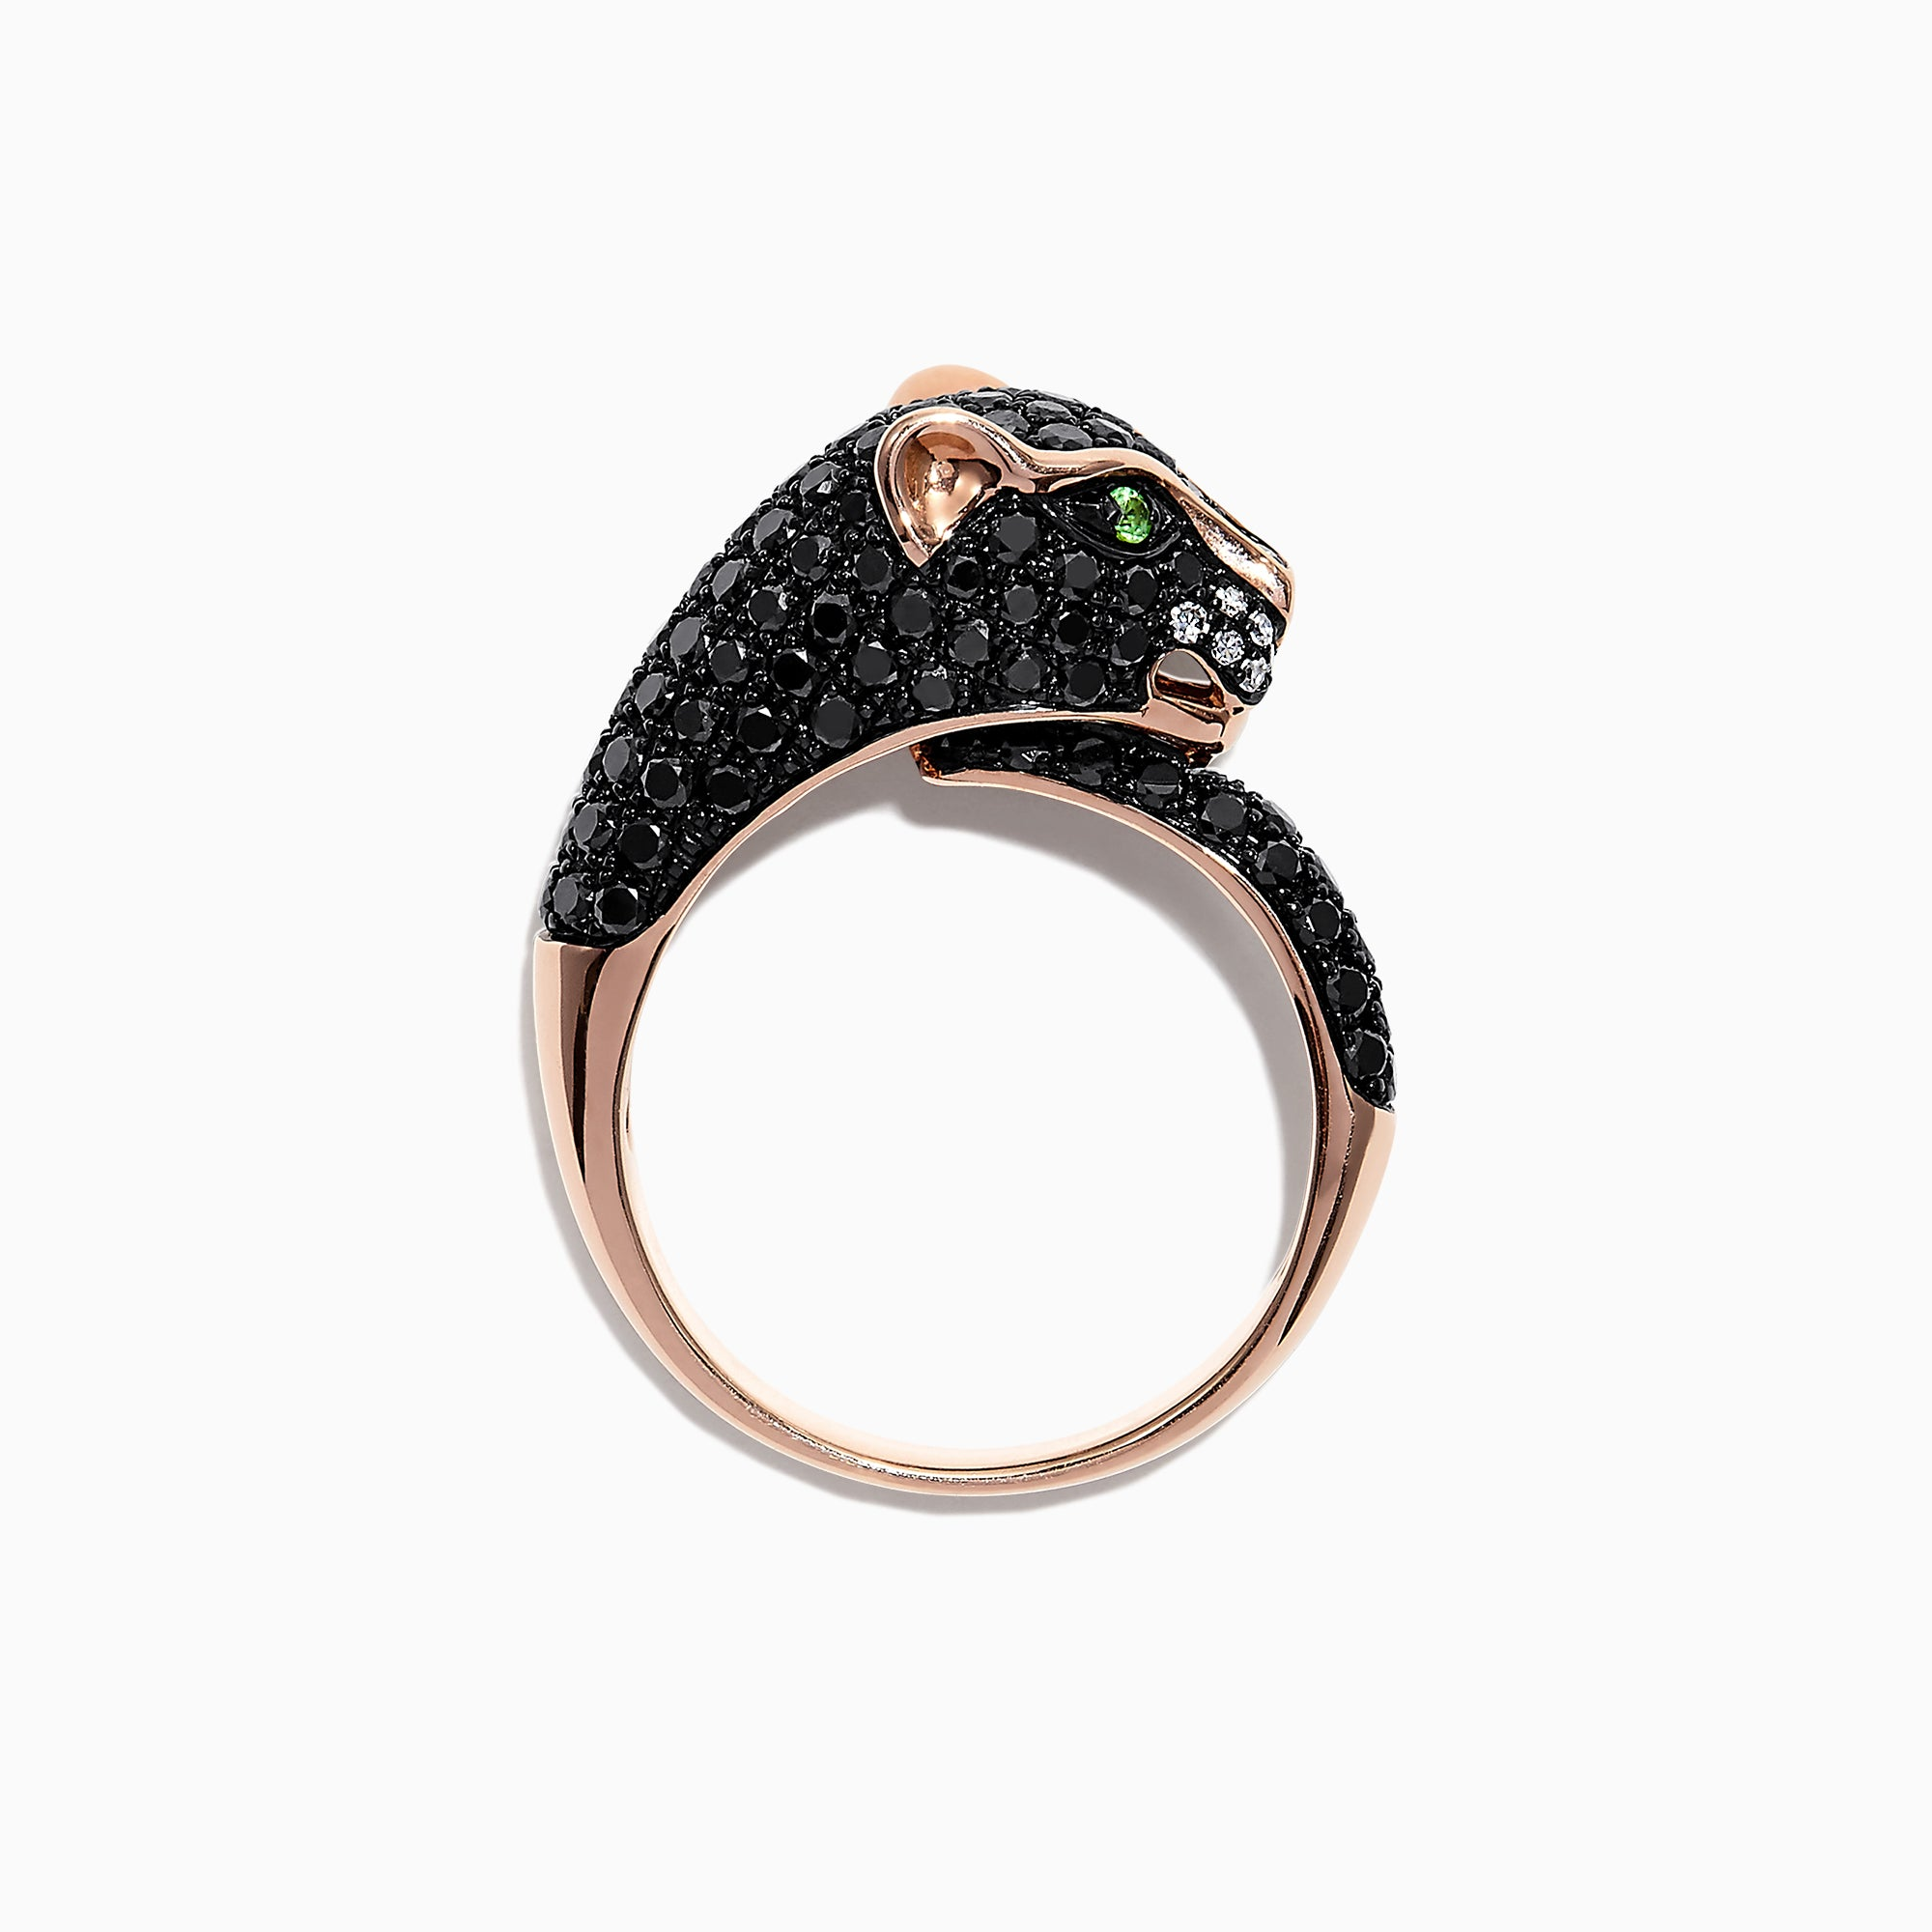 Effy Signature 14K Gold Black Diamond & Tsavorite Panther Ring, 1.75 TCW